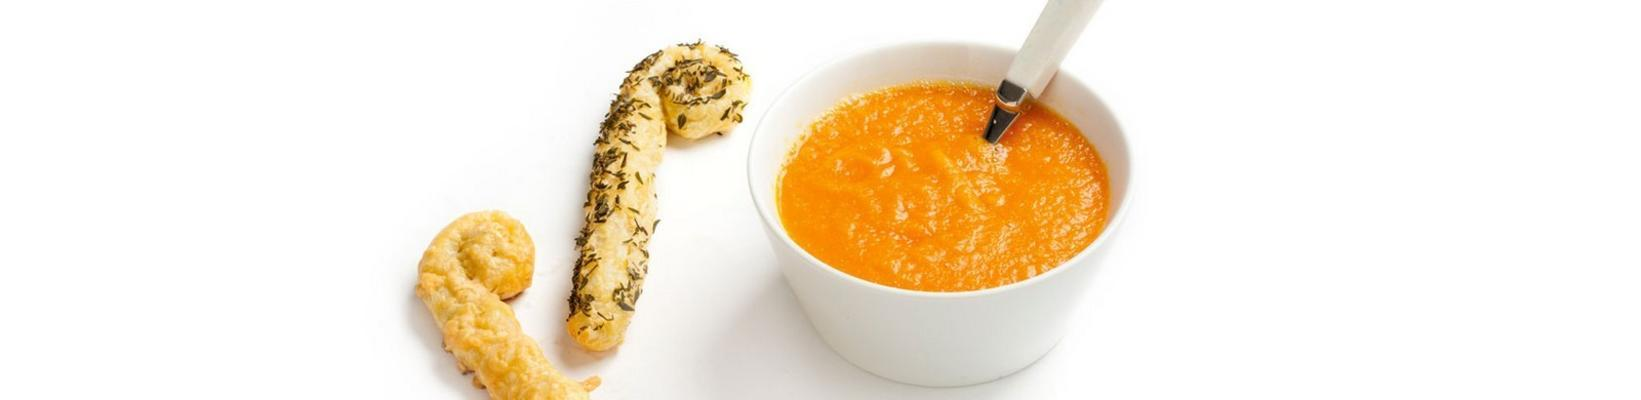 carrot soup with puff pastry